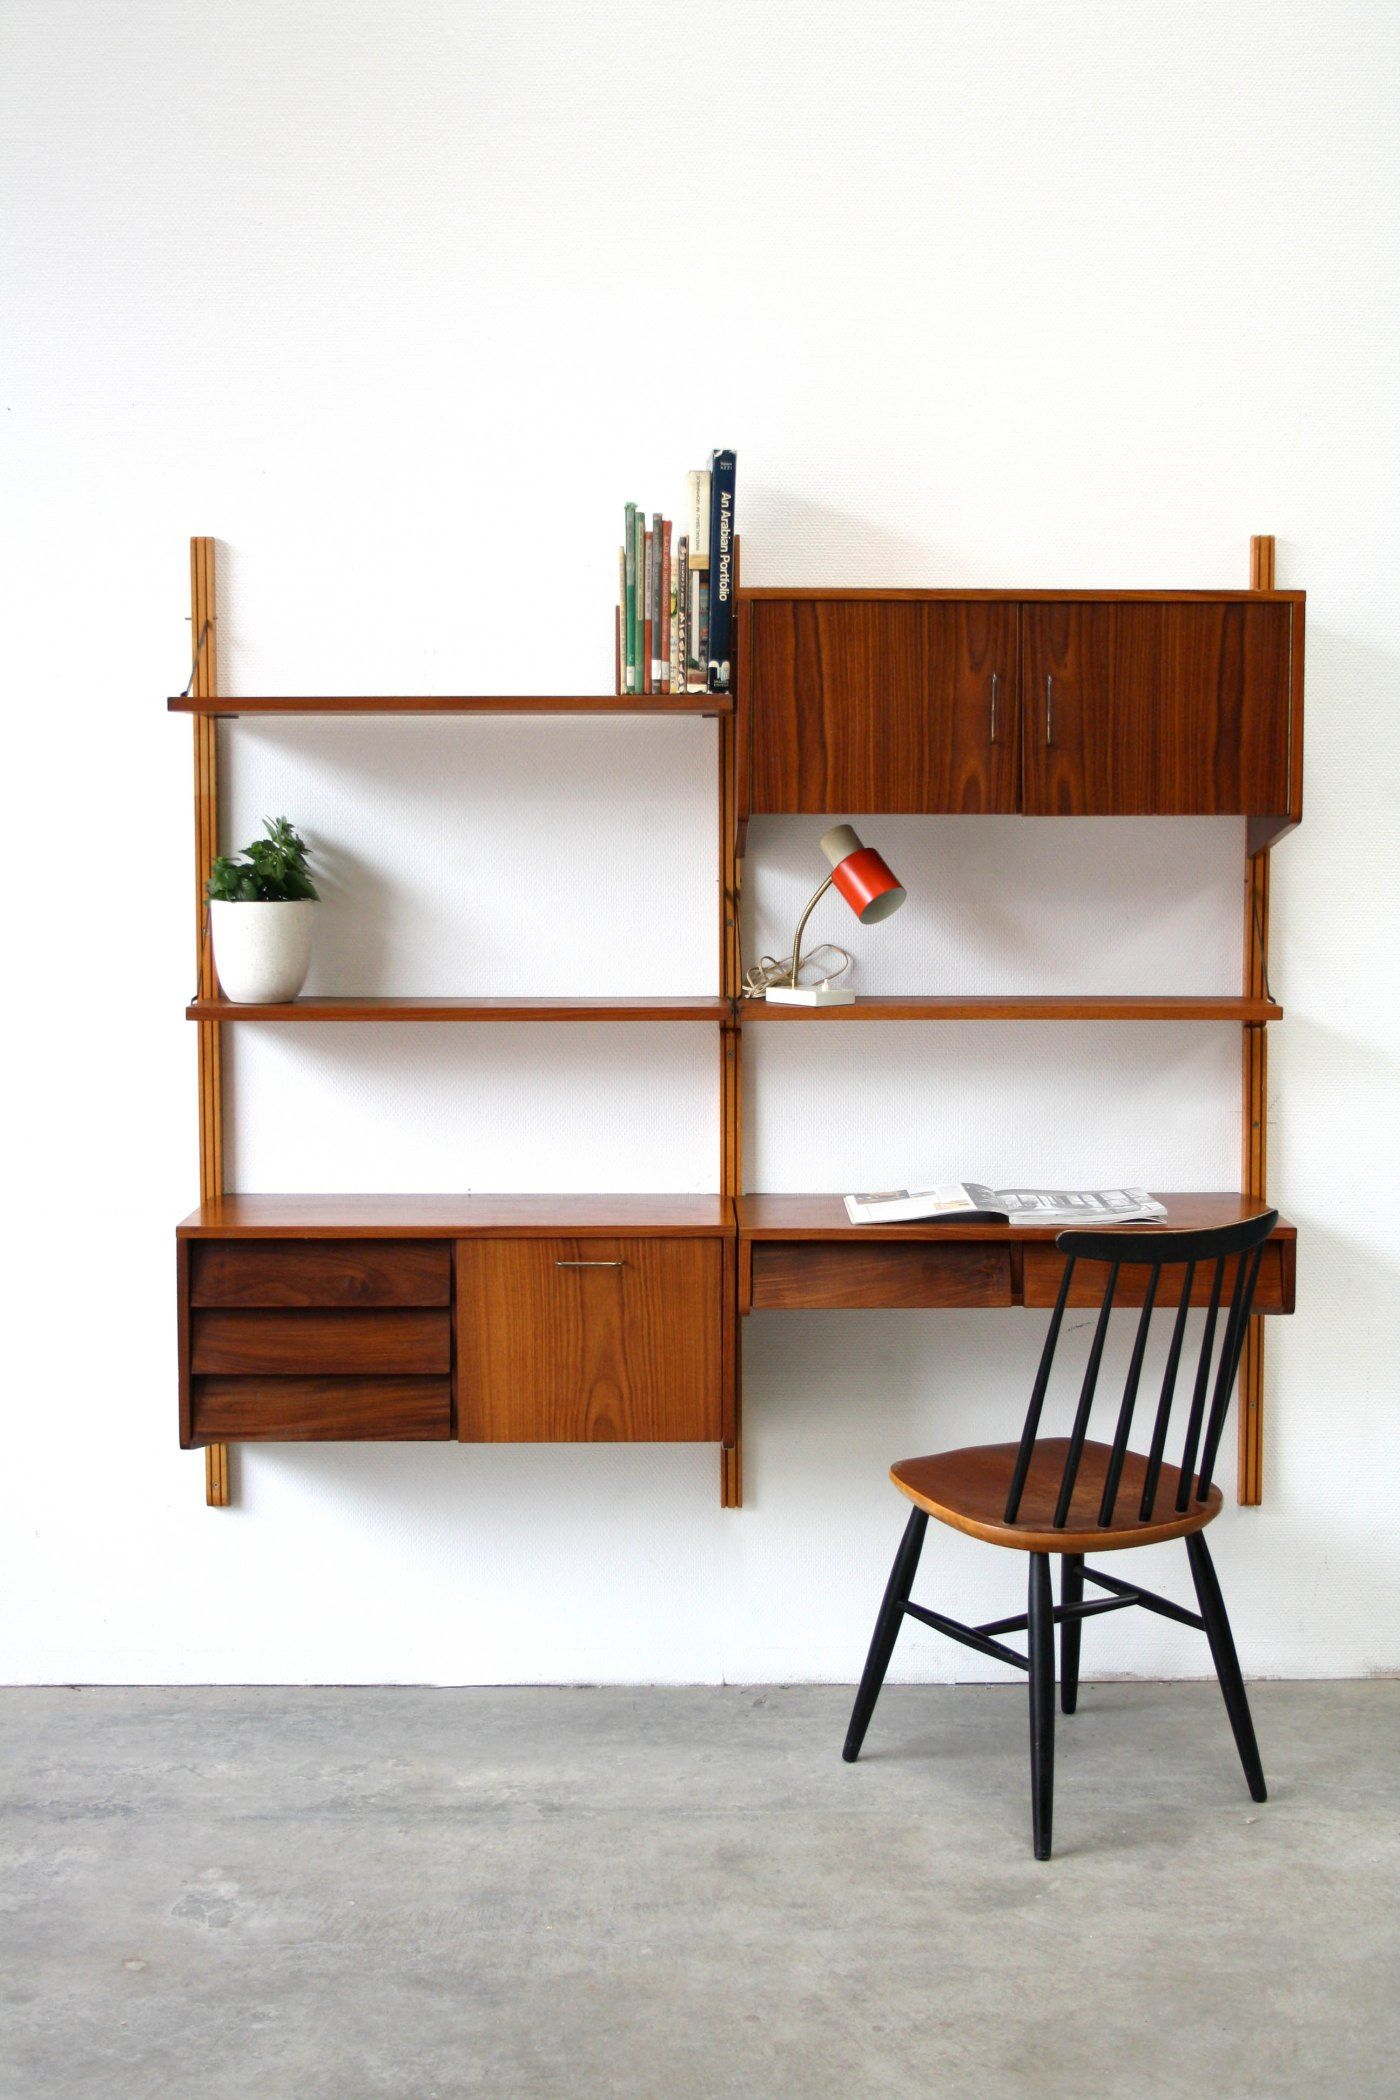 Deens design wandkast wandmeubel build stuff bureau for Deens design meubelen